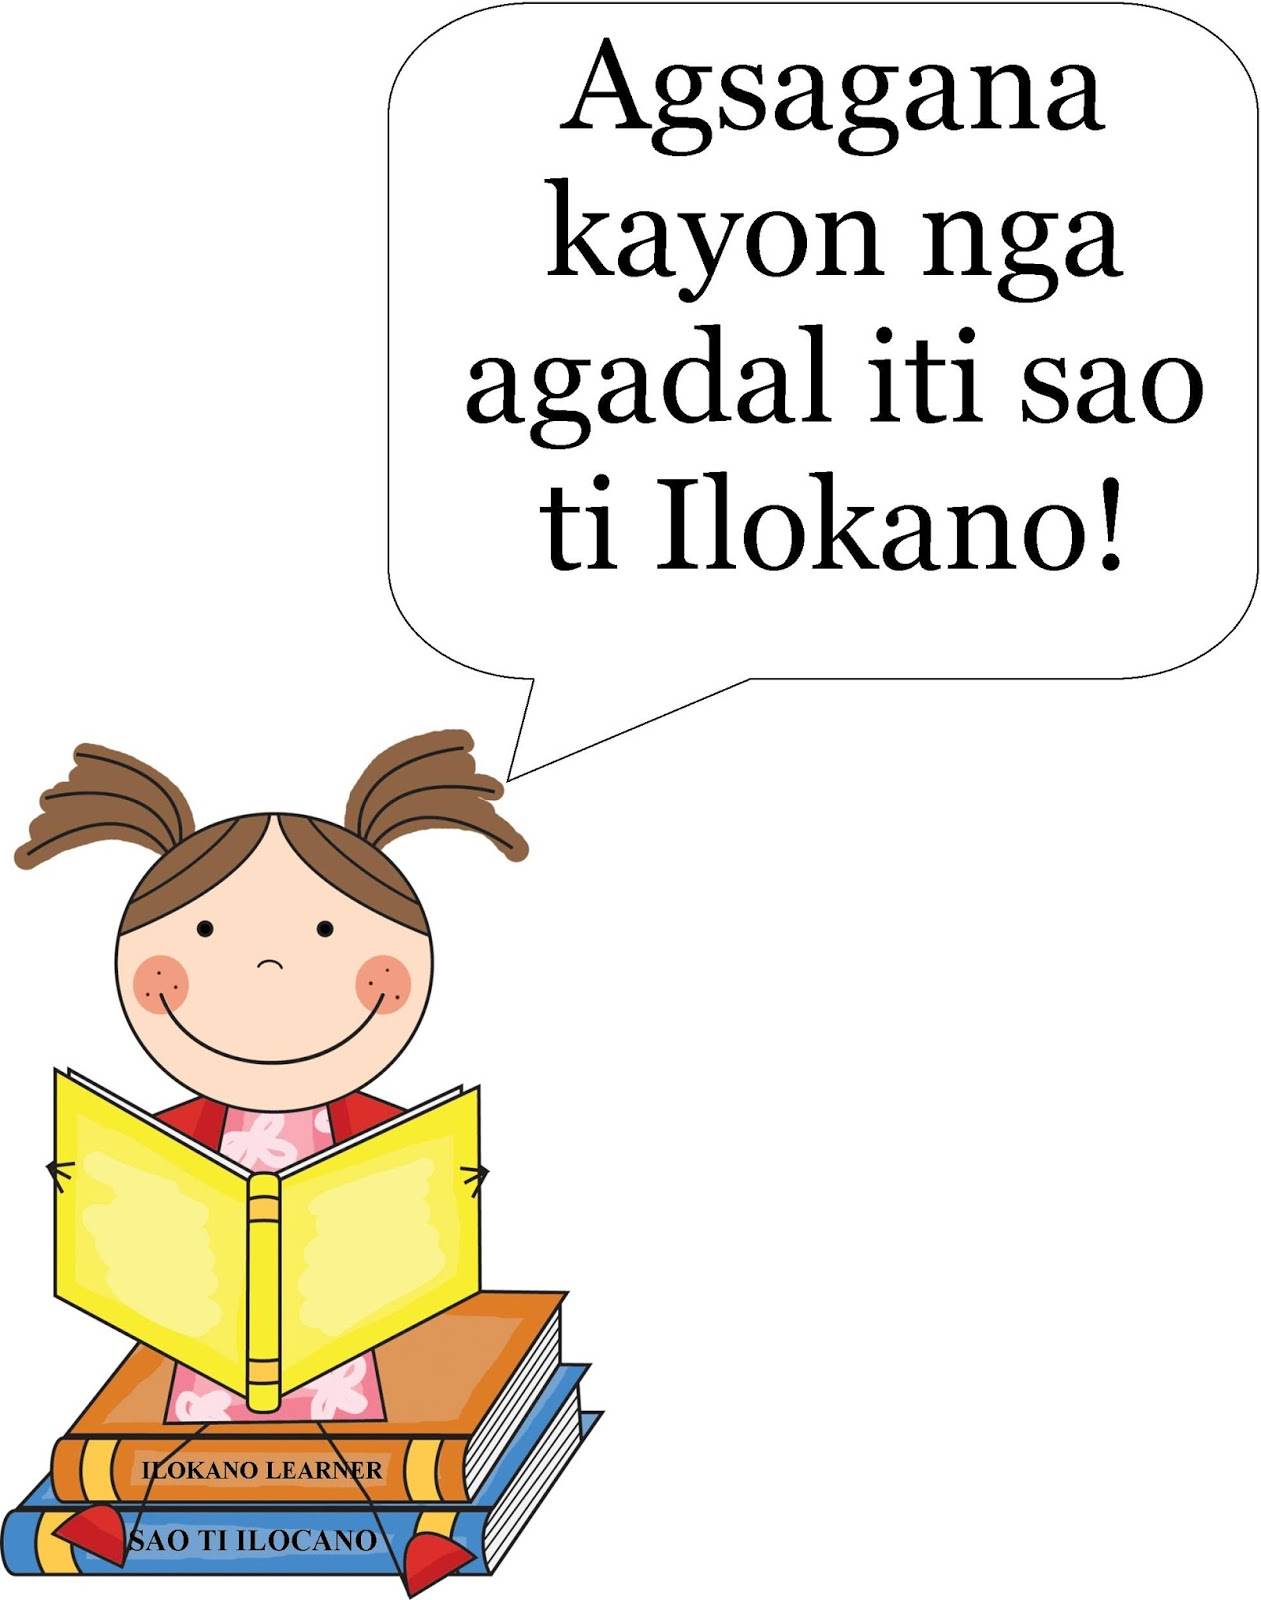 emotion talk in ilokano essay The following research has argued the importance of parent-child conversation in terms of understanding complex emotions by children.